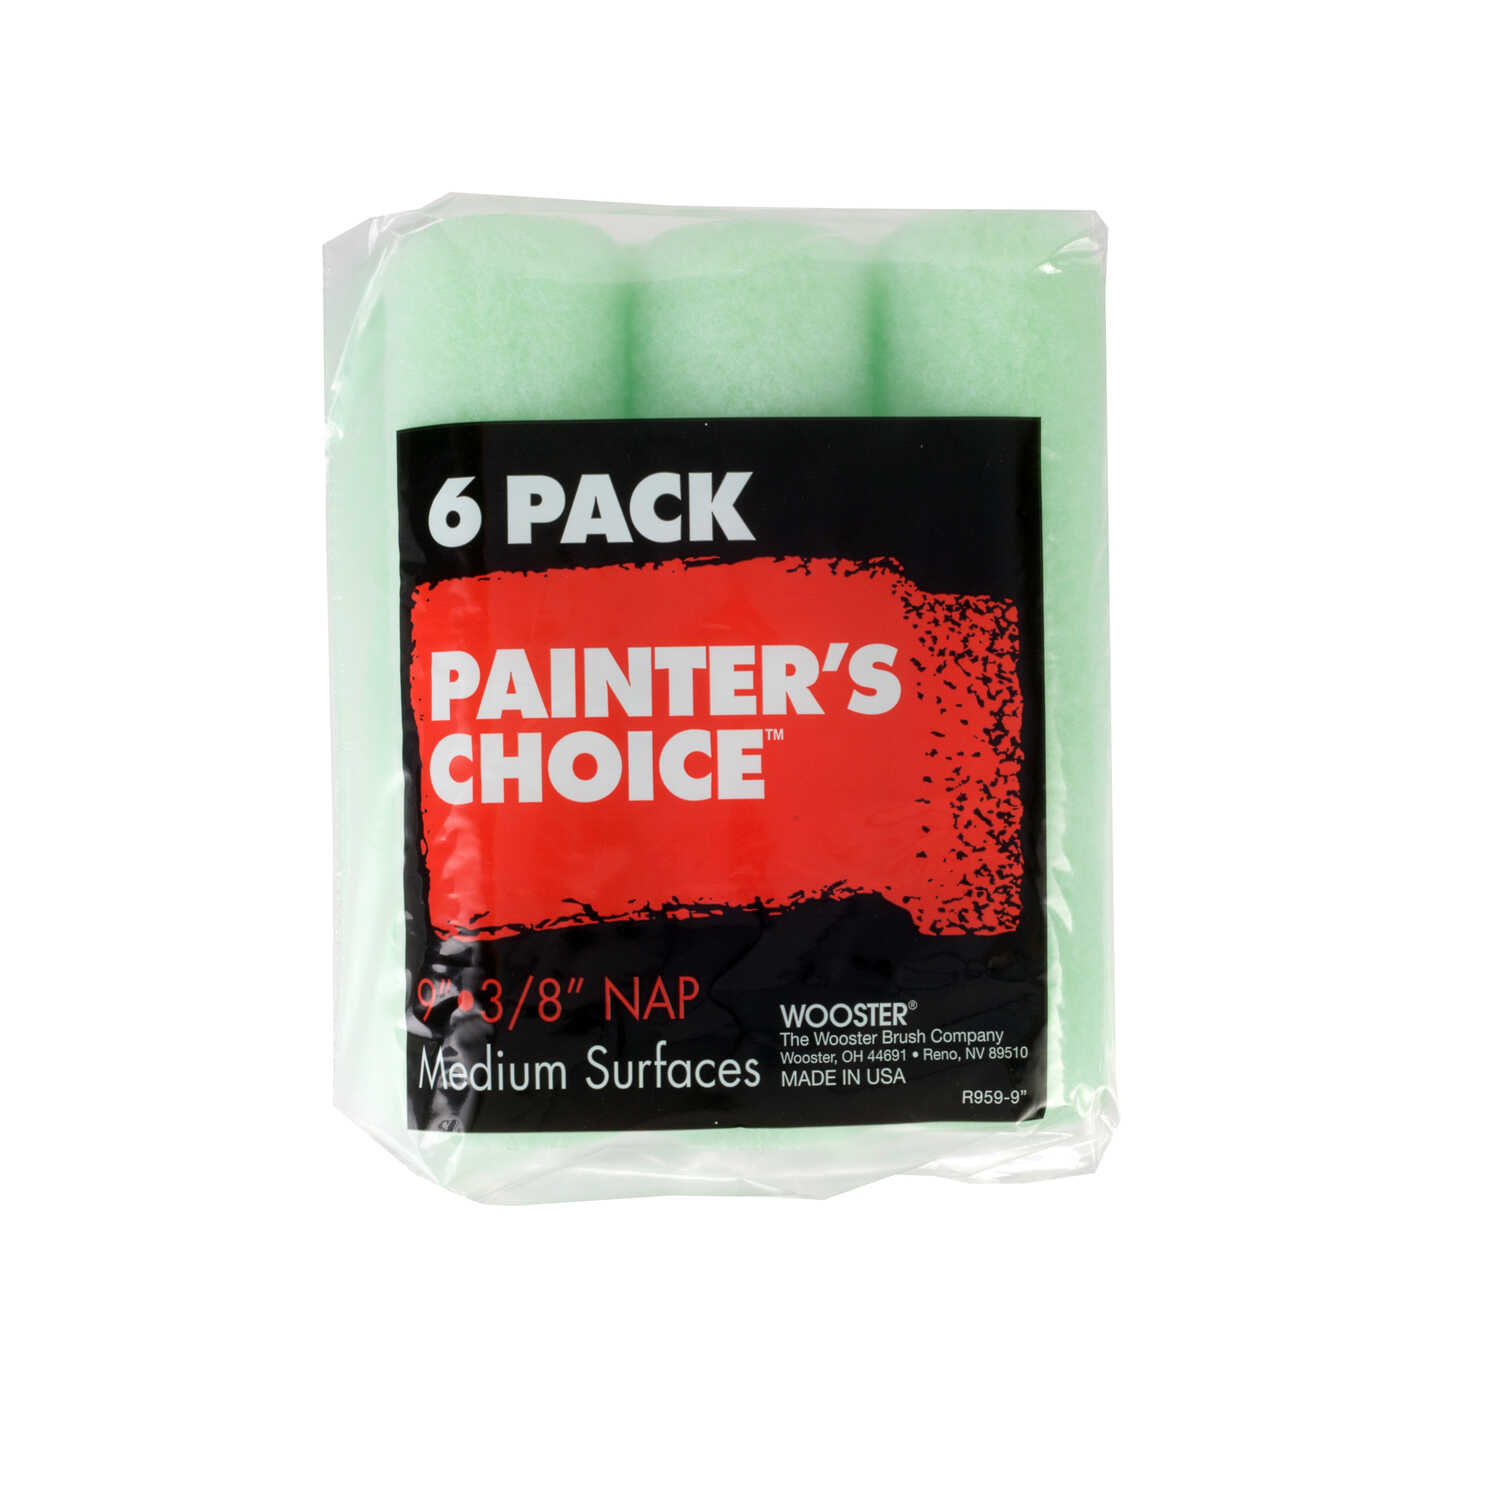 Wooster  Painter's Choice  Fabric  3/8 in.  x 9 in. W 6 pk For Medium Surfaces Paint Roller Cover